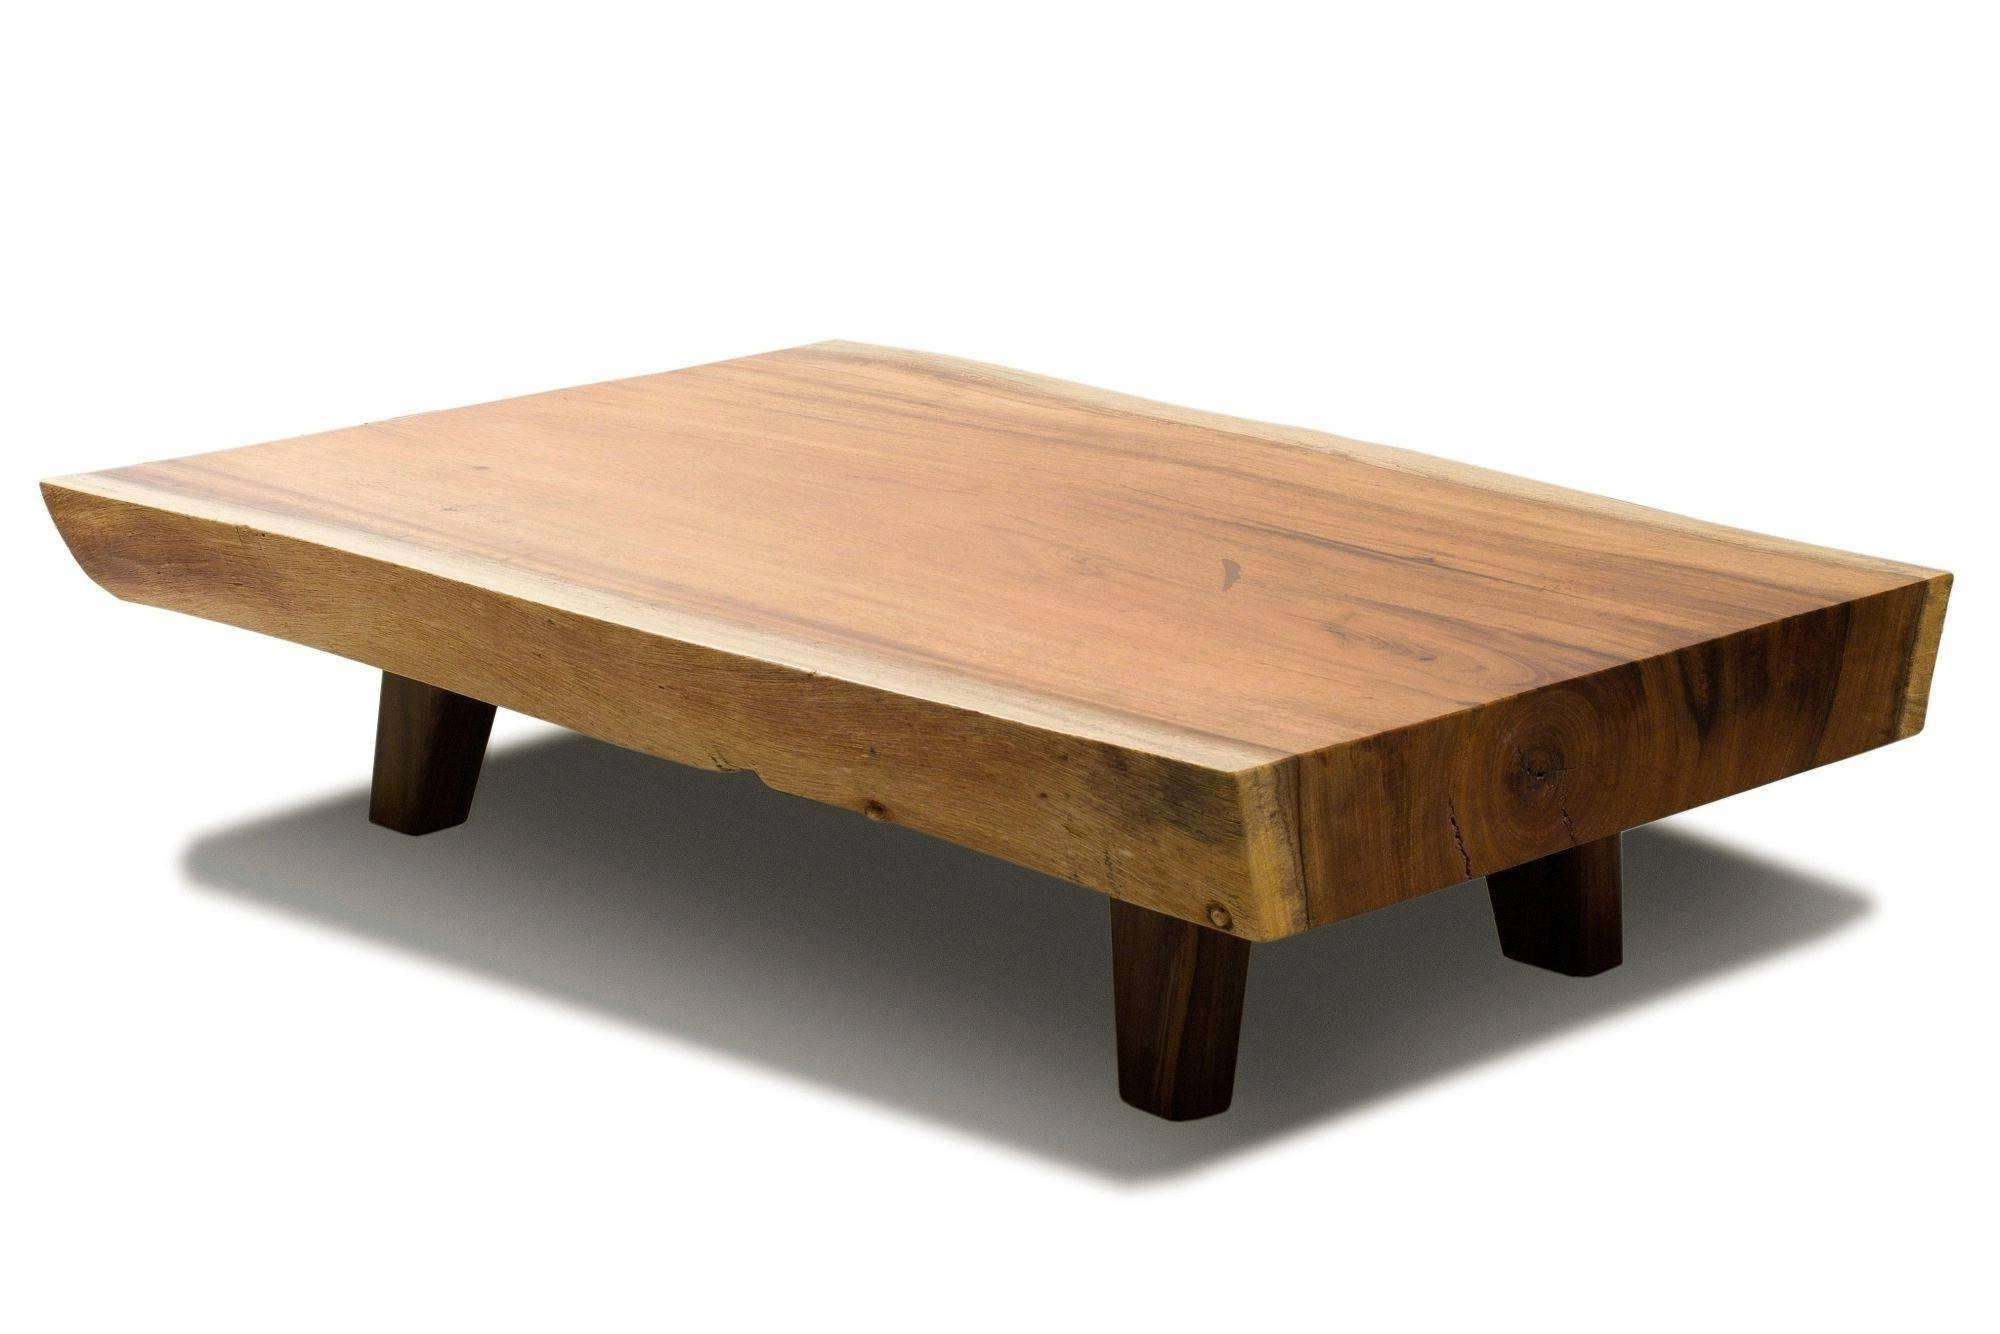 Coffee Table : Popular Large Low Wood Coffee Tables Raw Edge Table Intended For Recent Large Low Wooden Coffee Tables (View 7 of 20)